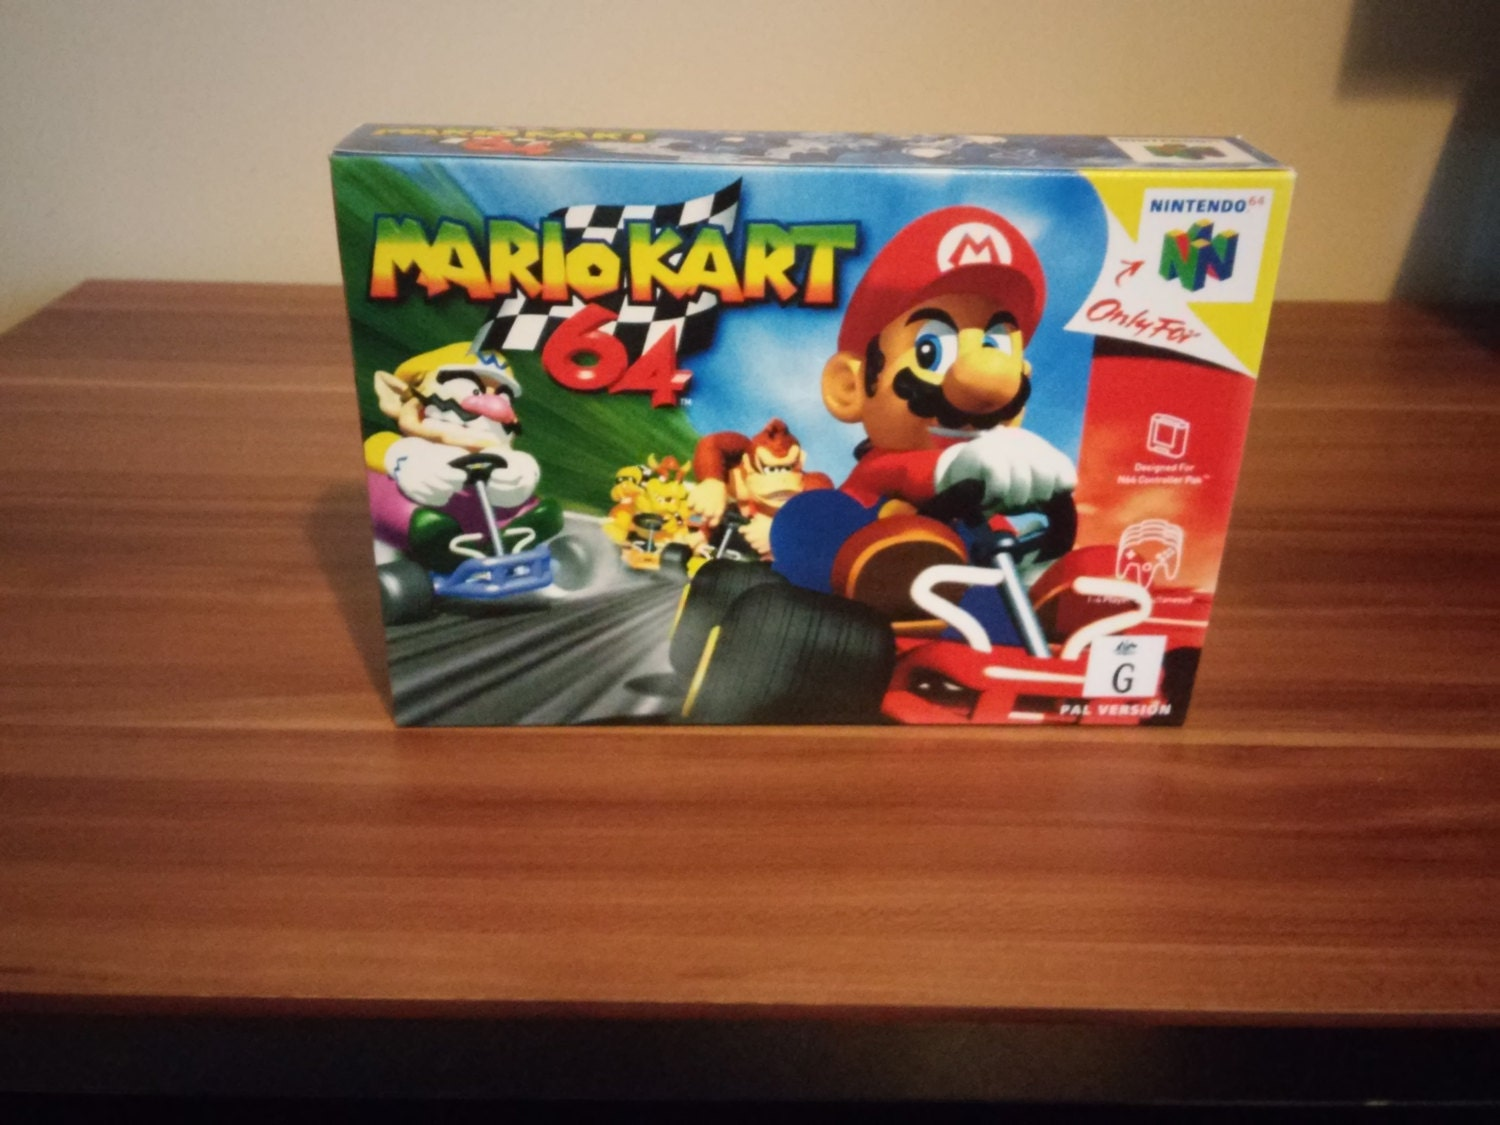 N64 Mario Kart  Repro Box and Insert NO Game Included